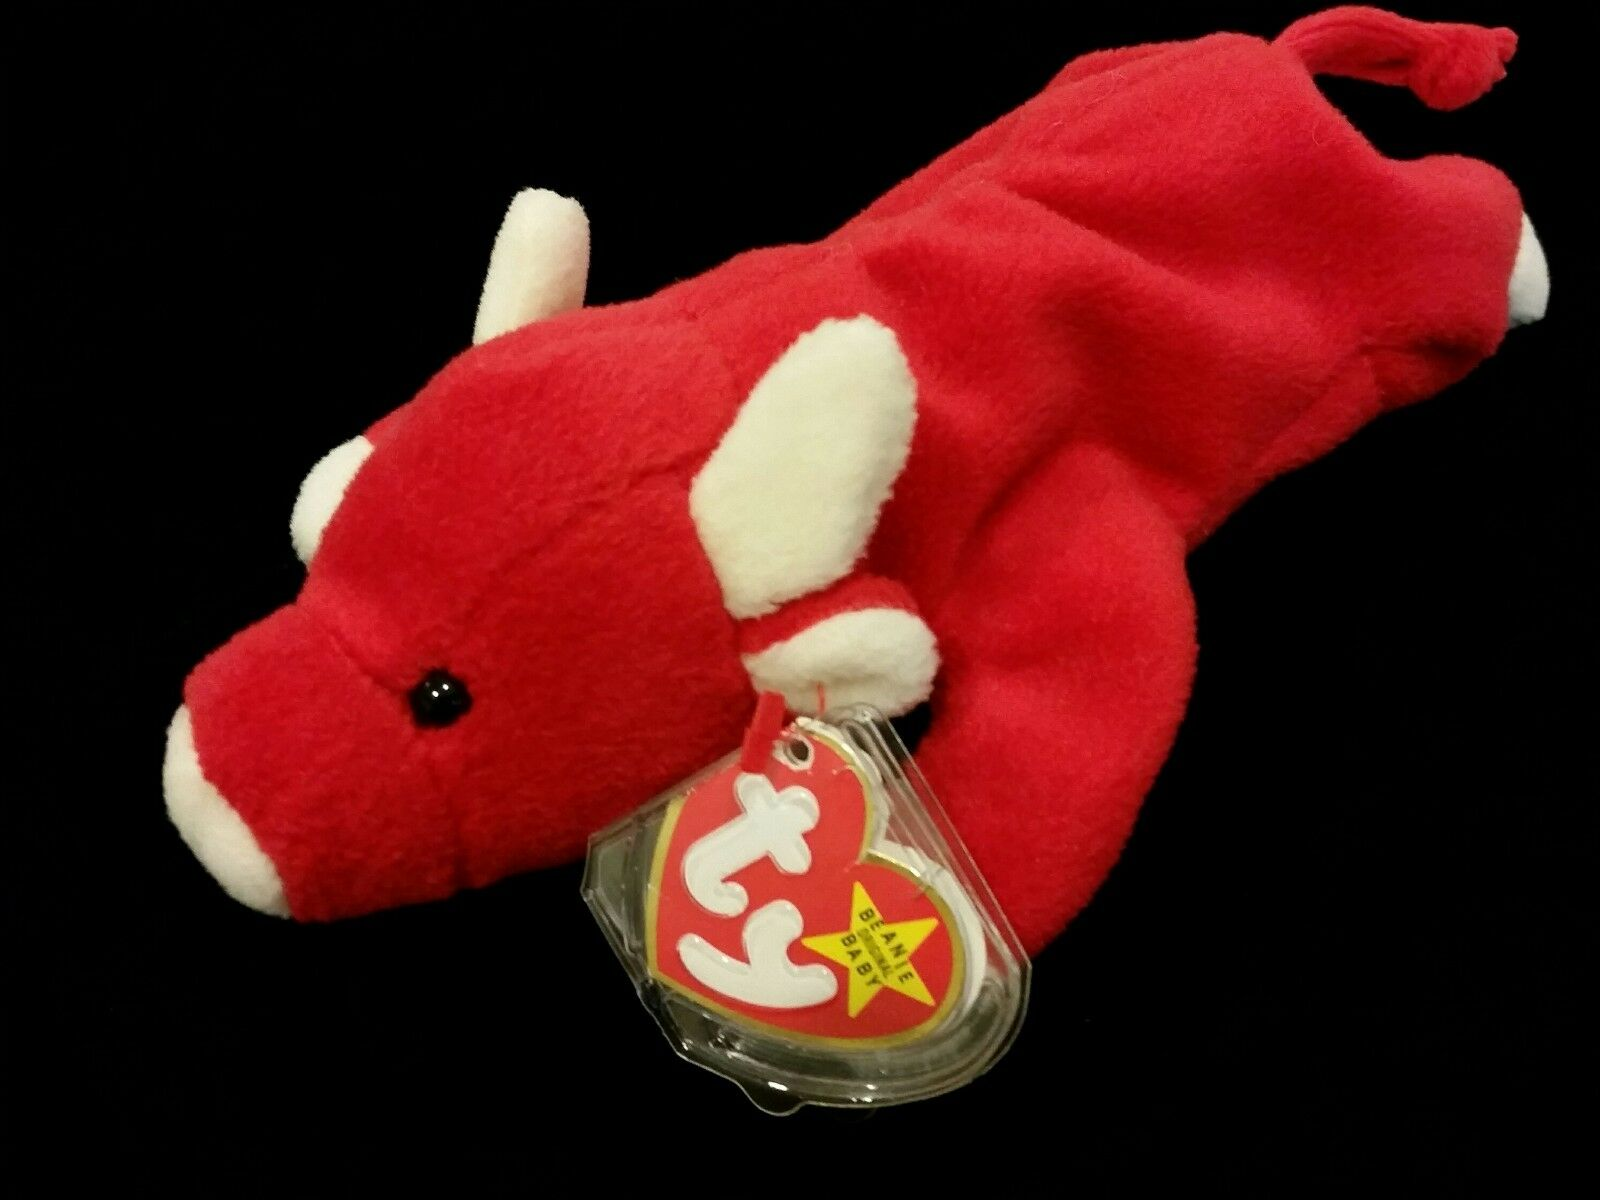 VINTAGE Rare 1995 SNORT TY Beanie Baby Red Bull Style 4002 with Tags